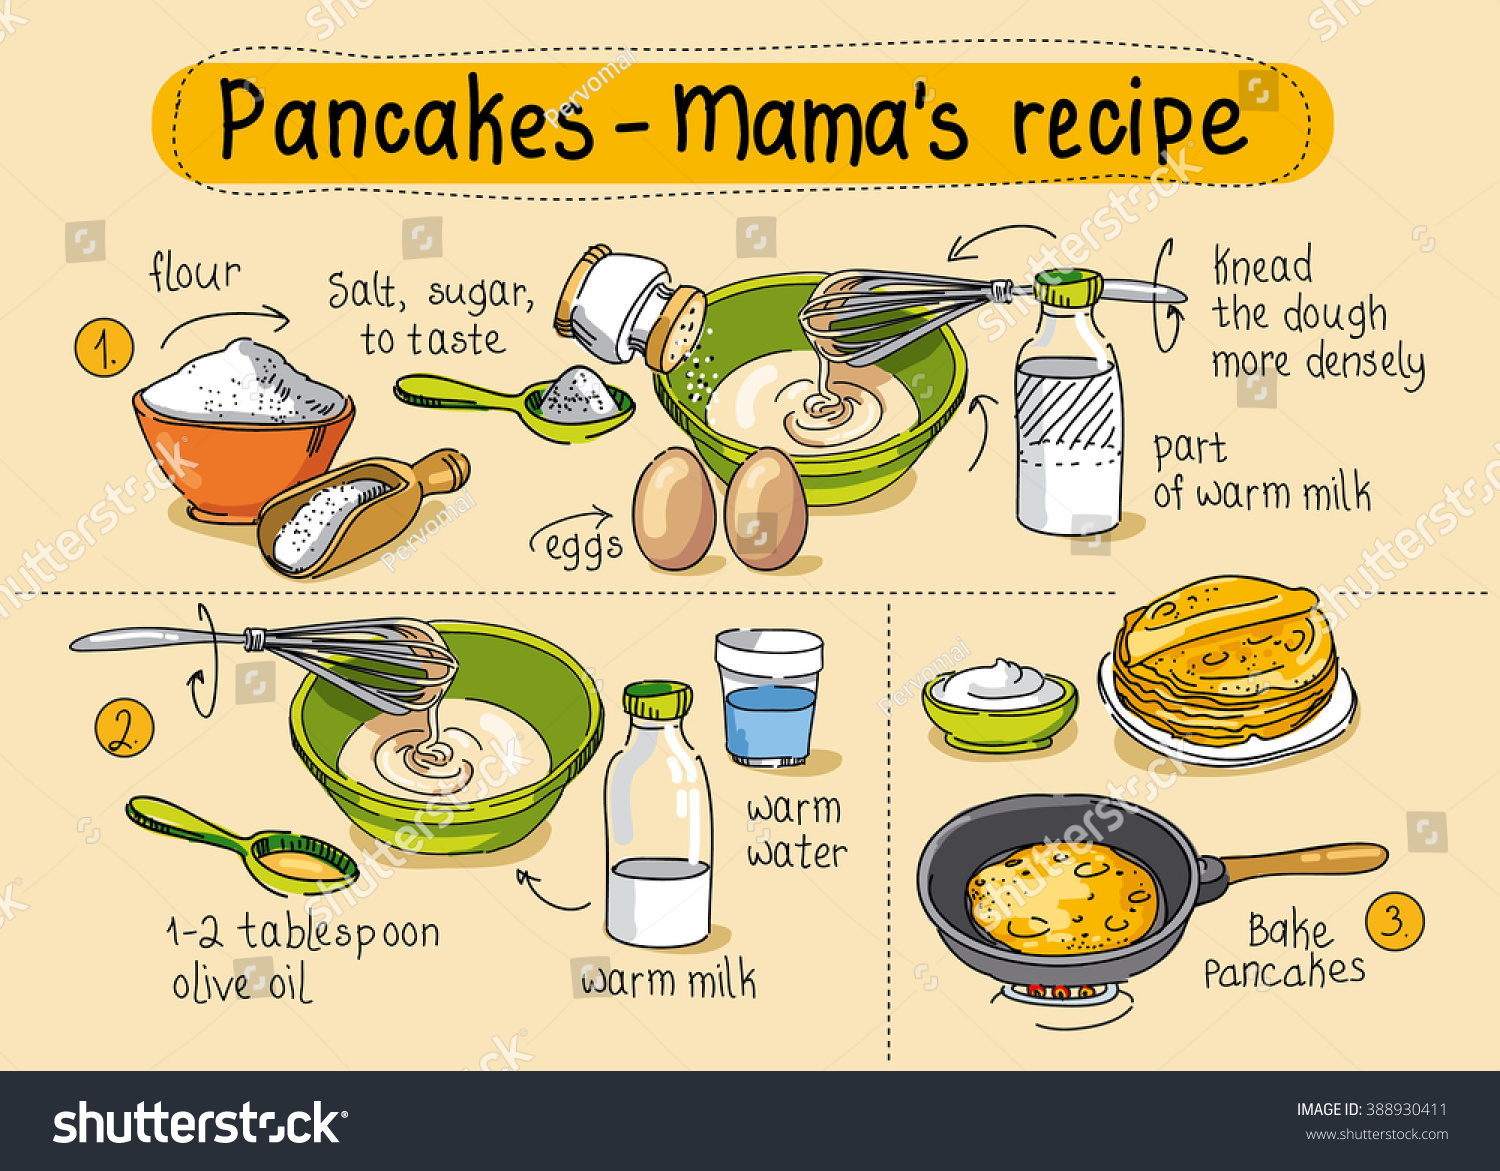 Recipe Homemade Pancakes Step By Step Stock Vector (Royalty